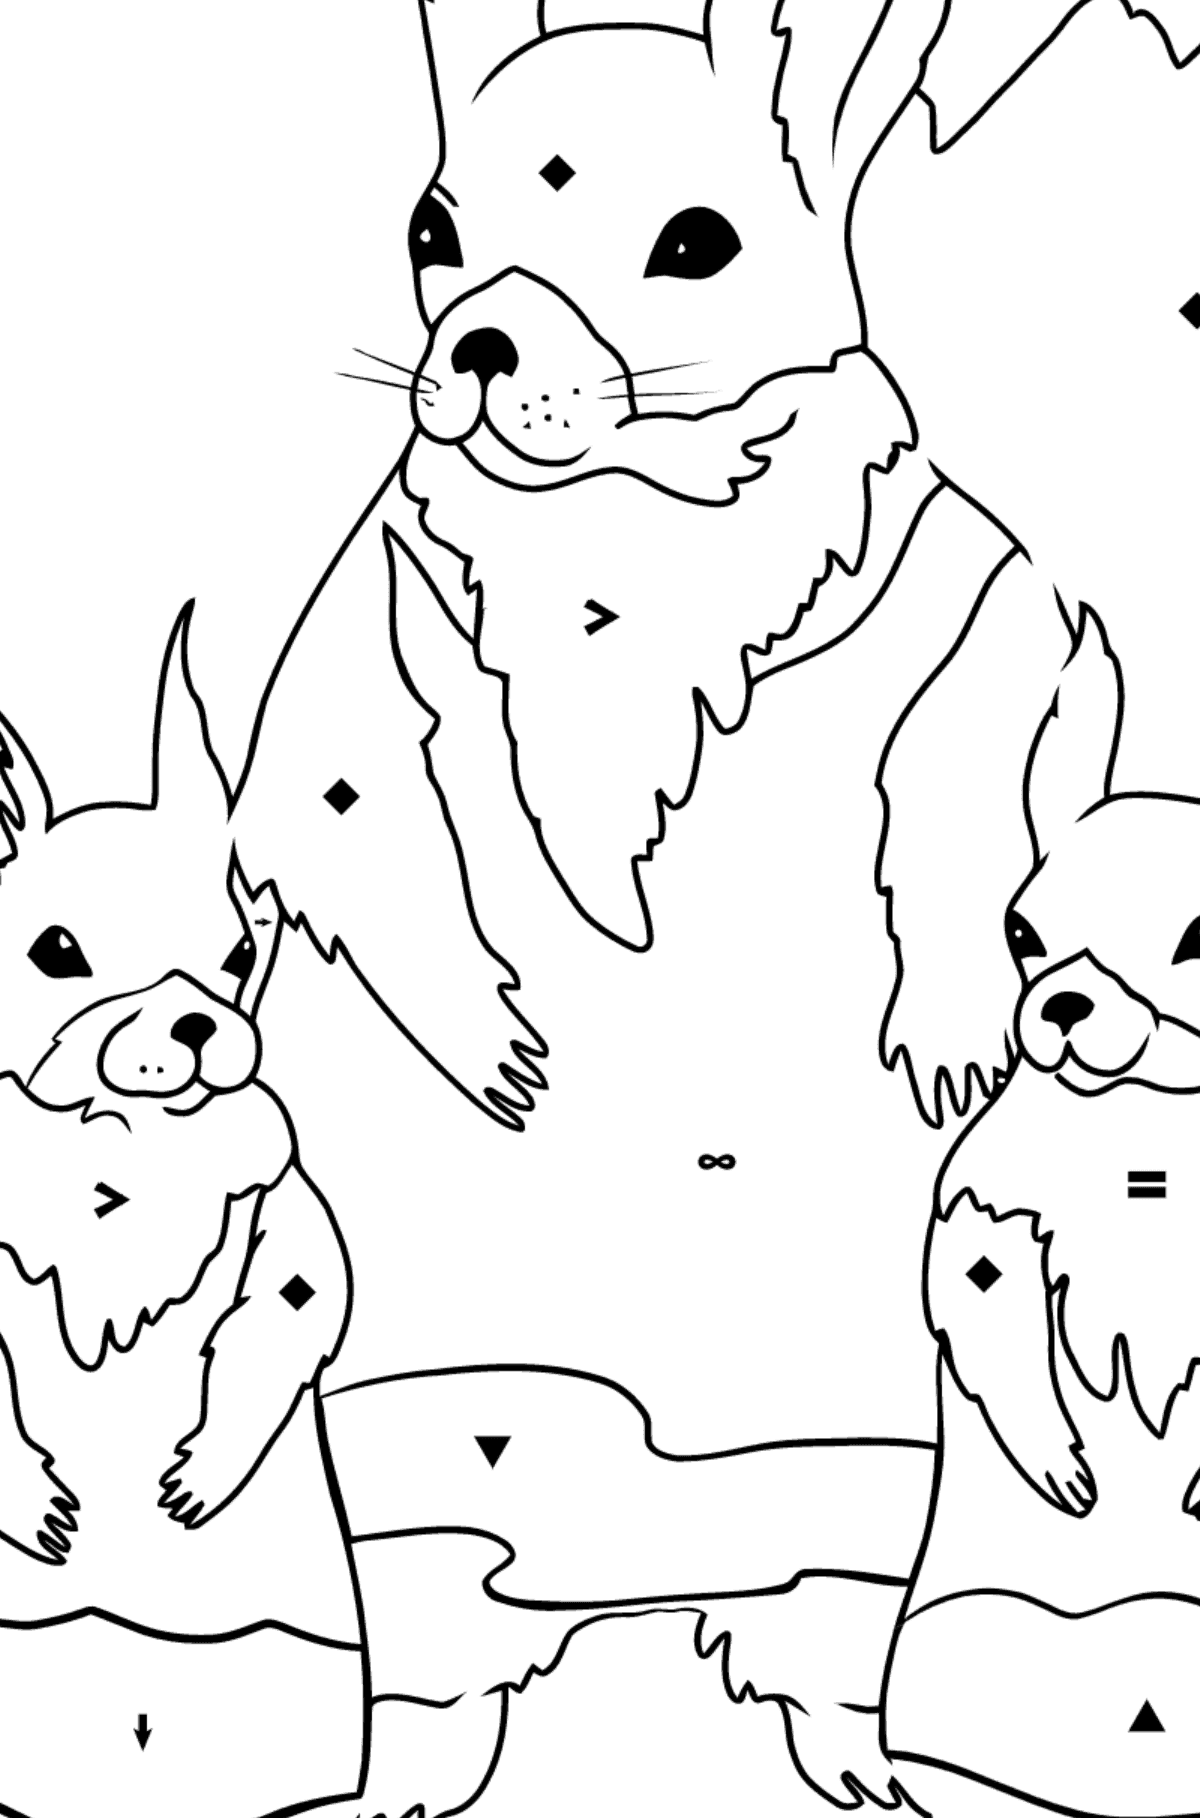 Spring Coloring Page - Squirrels are Preparing to Greet the Sun for Children  - Color by Special Symbols